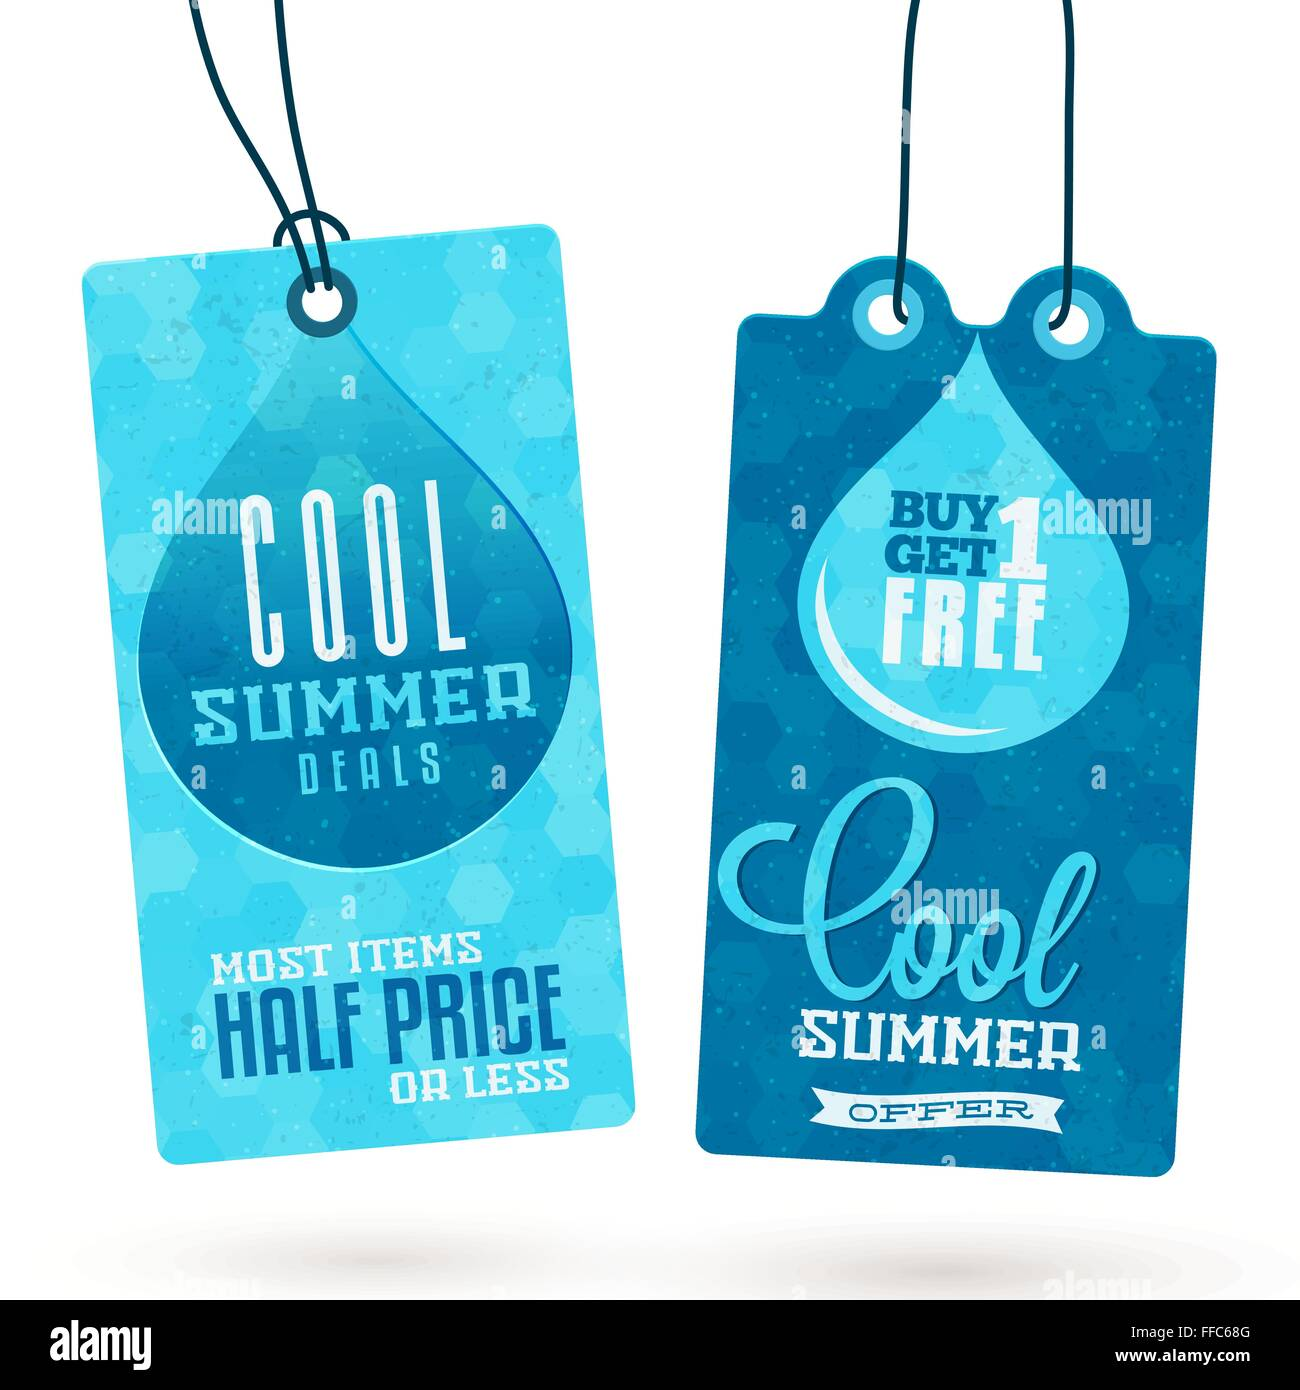 Collection of Vintage Summer Sales Related Hang Tags - Stock Image